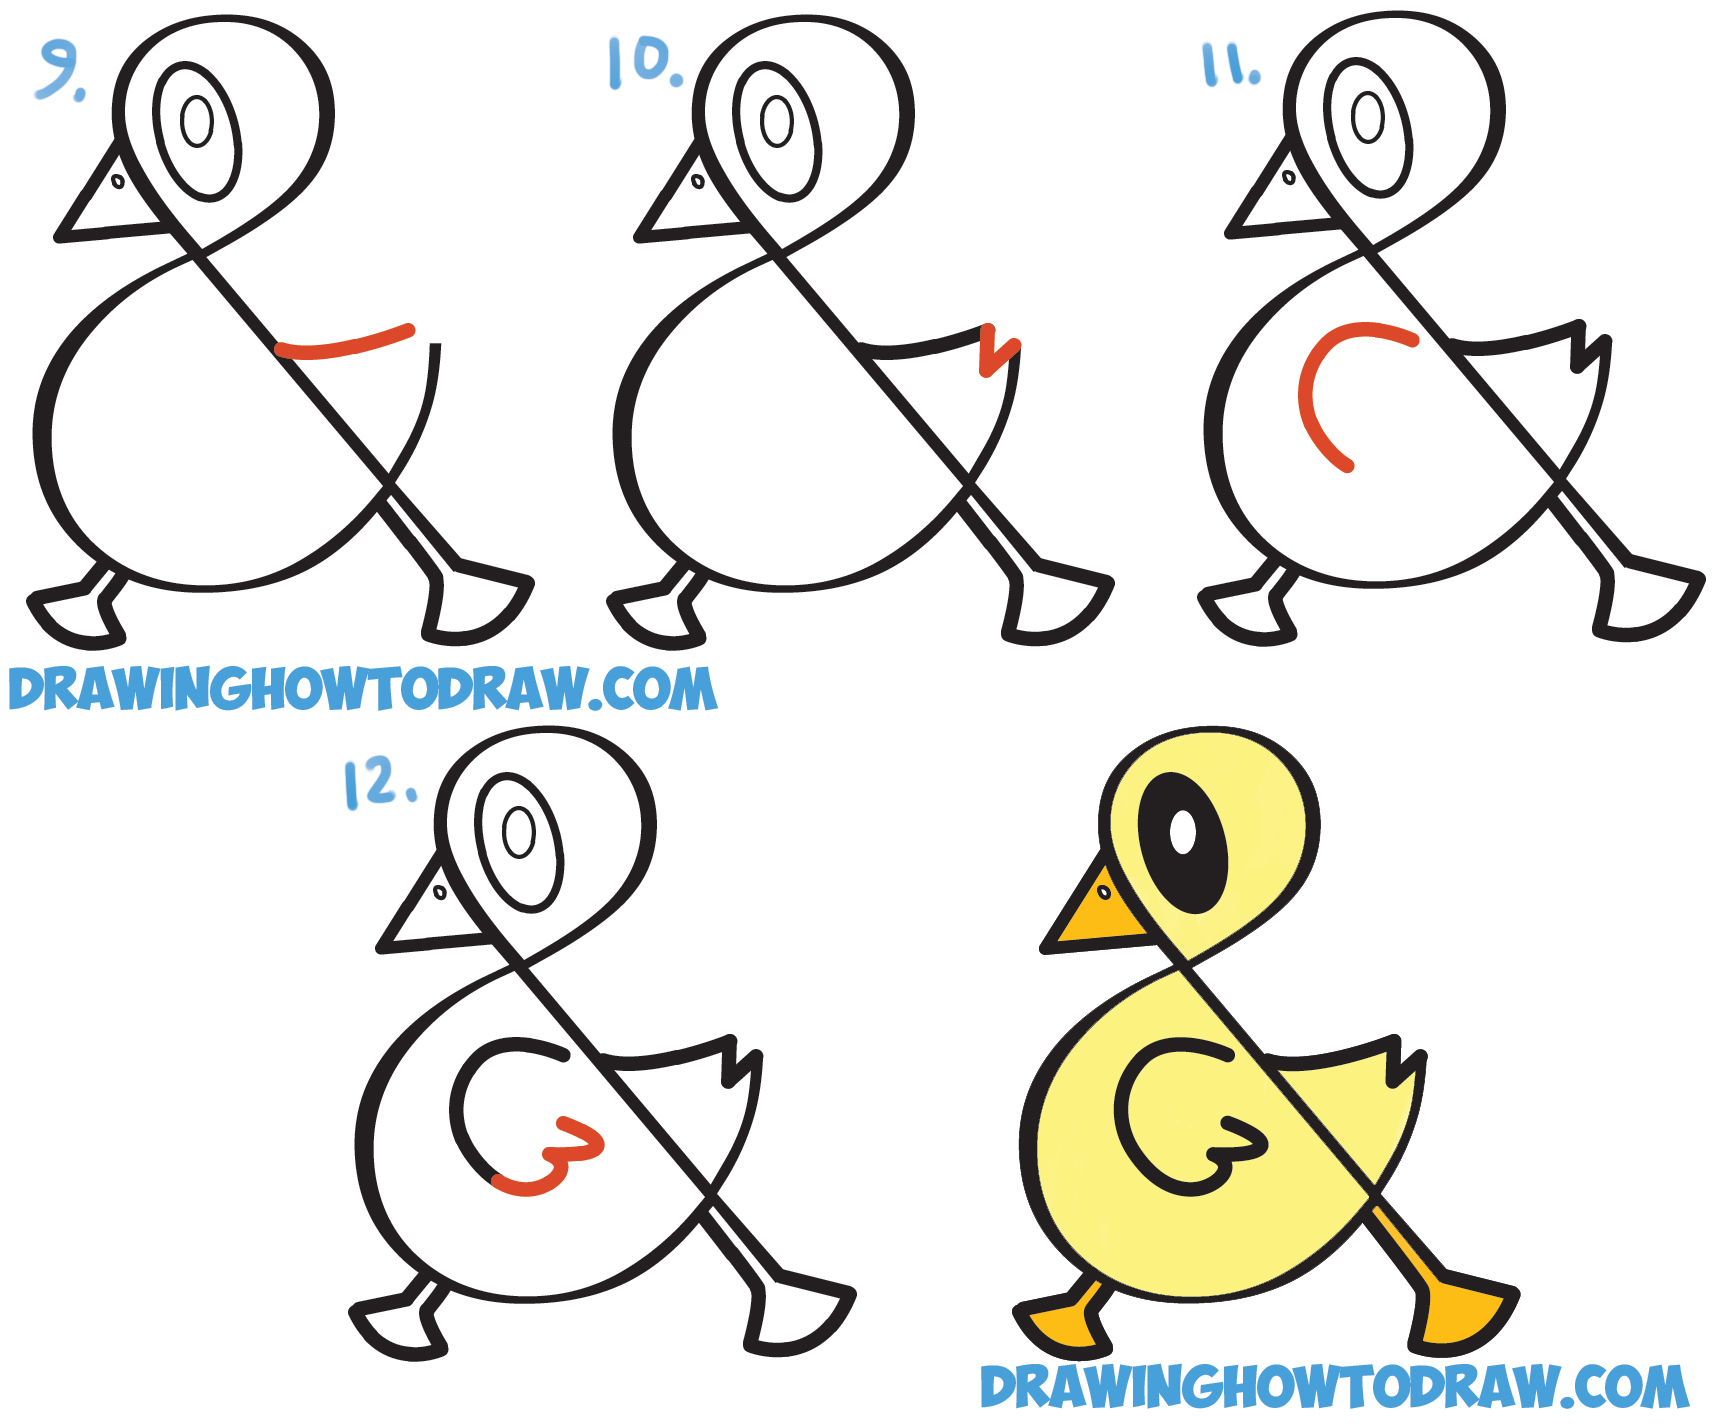 Easy Drawings How To Draw A Cute Cartoon Duck From